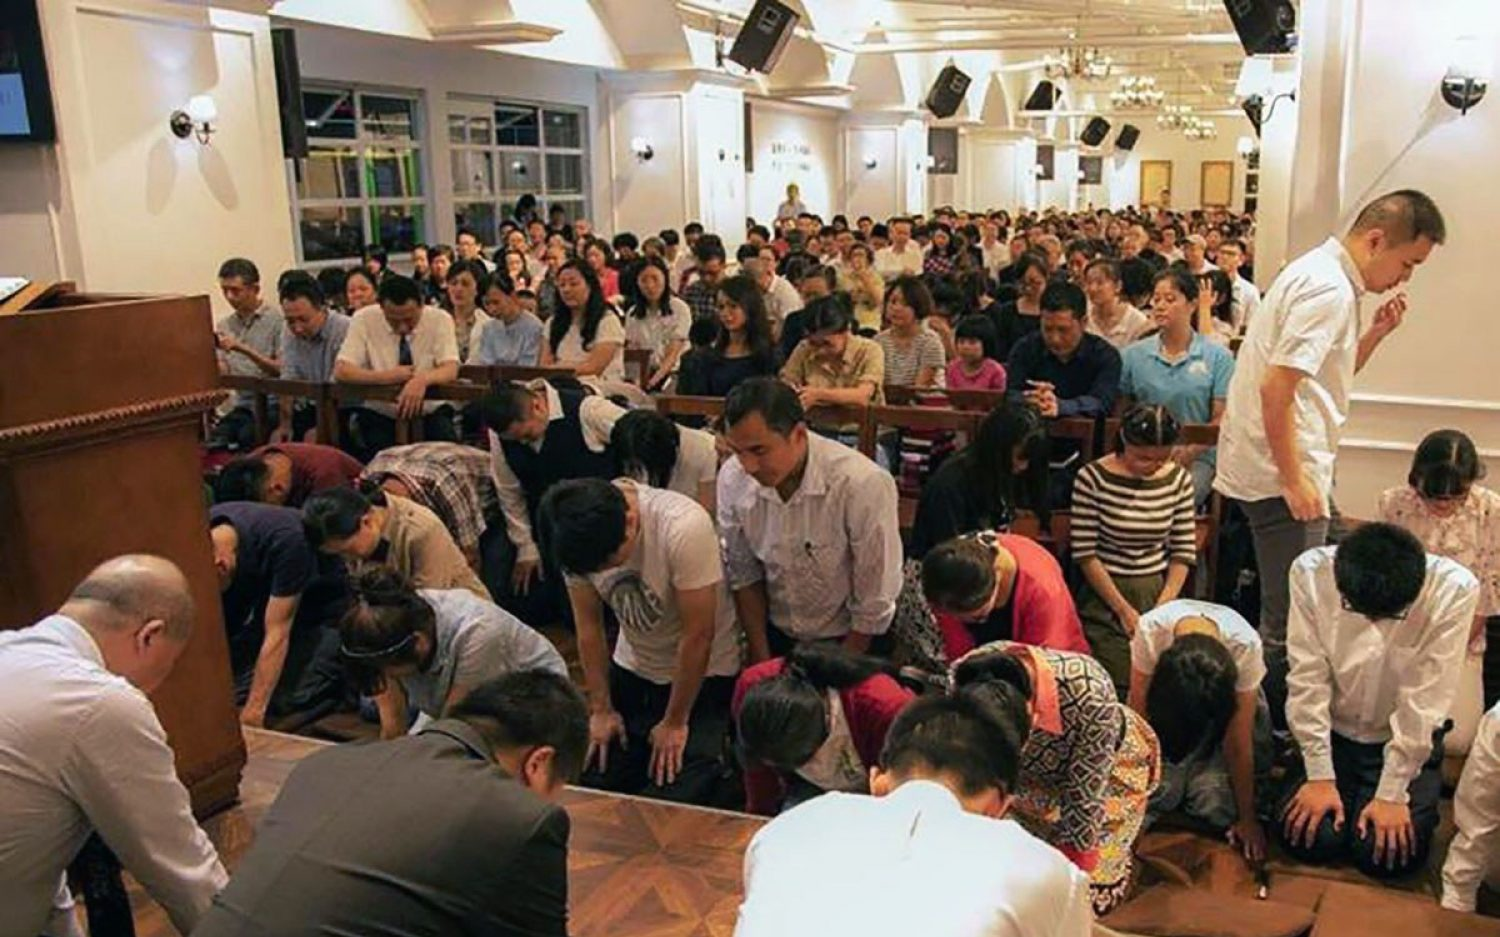 Chinese churchgoers arrested, forbidden to meet